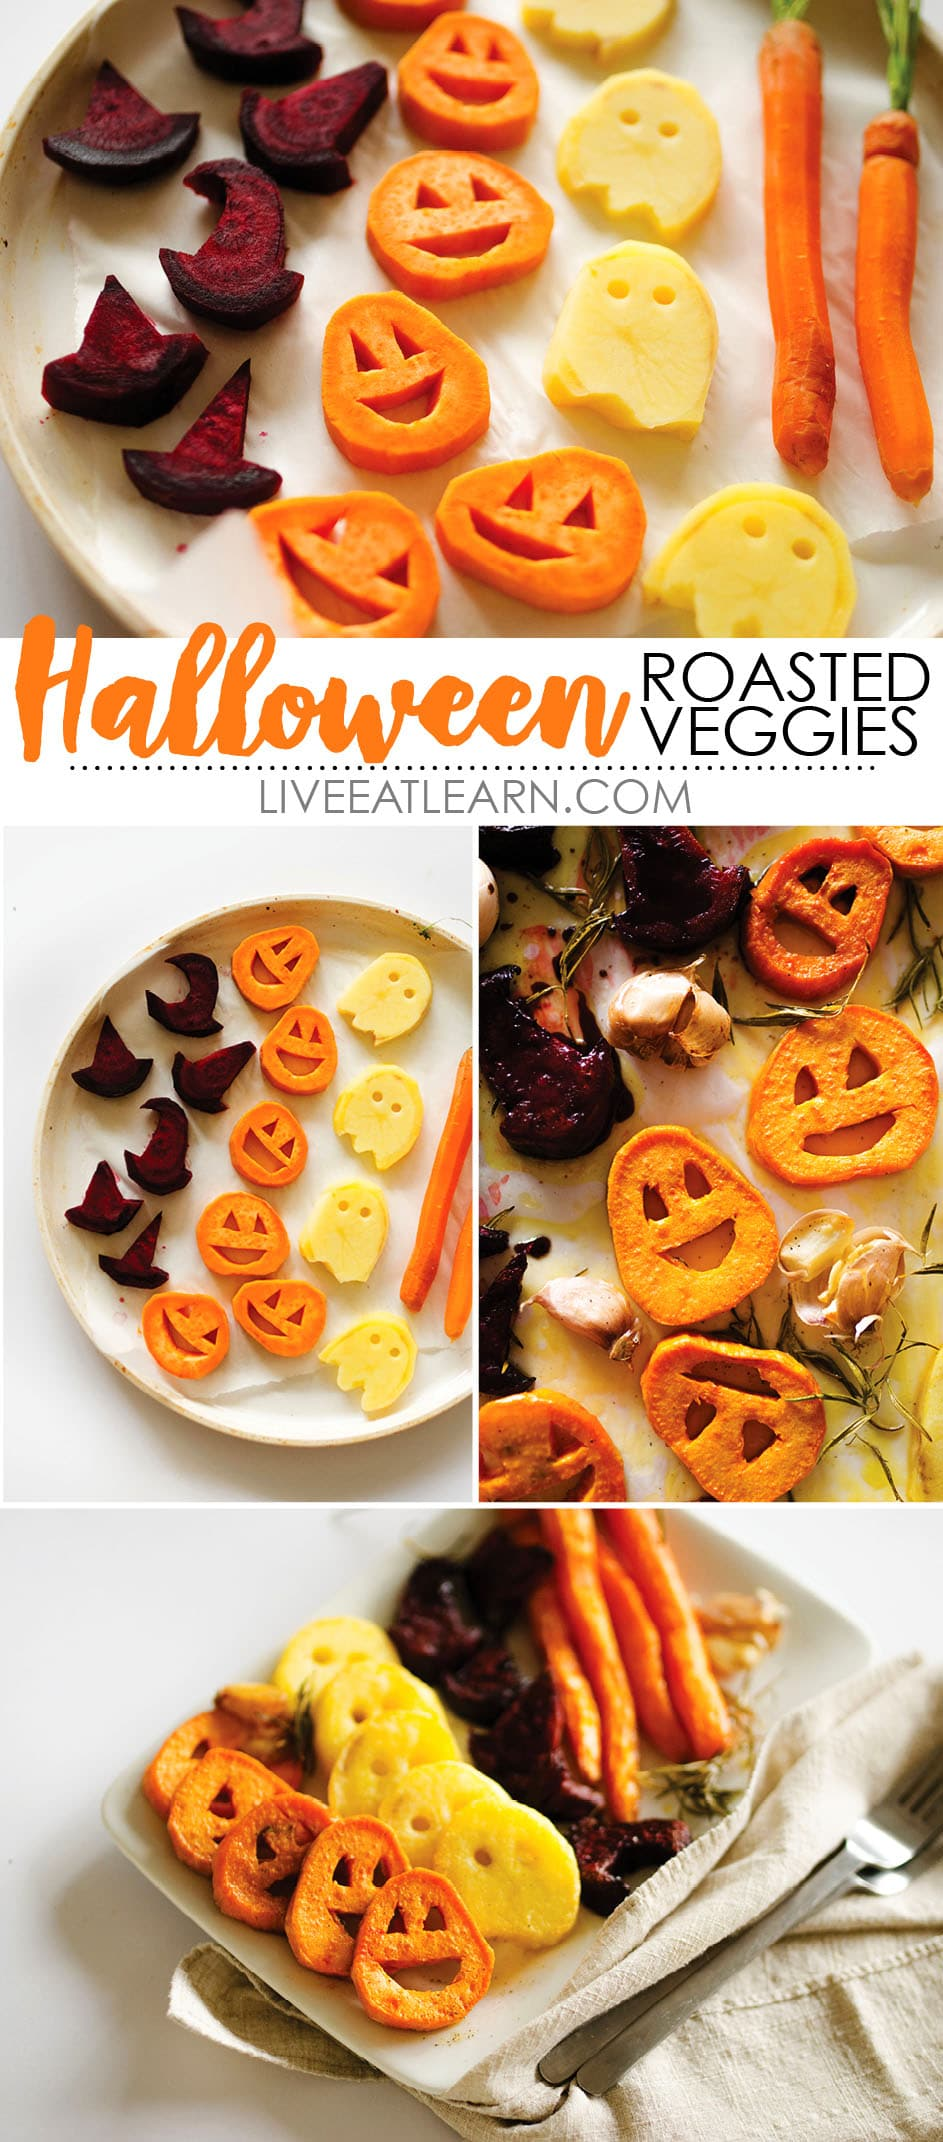 Awesome Halloween idea! With sweet potato jack-o-lanterns, beet root witch's hats, and spooky potato ghosts, this Halloween Roasted Veggies recipe is a healthy way to celebrate this October! Perfect to serve for snack or as a side dish, vegan, gluten-free, and a dish the whole family will love.